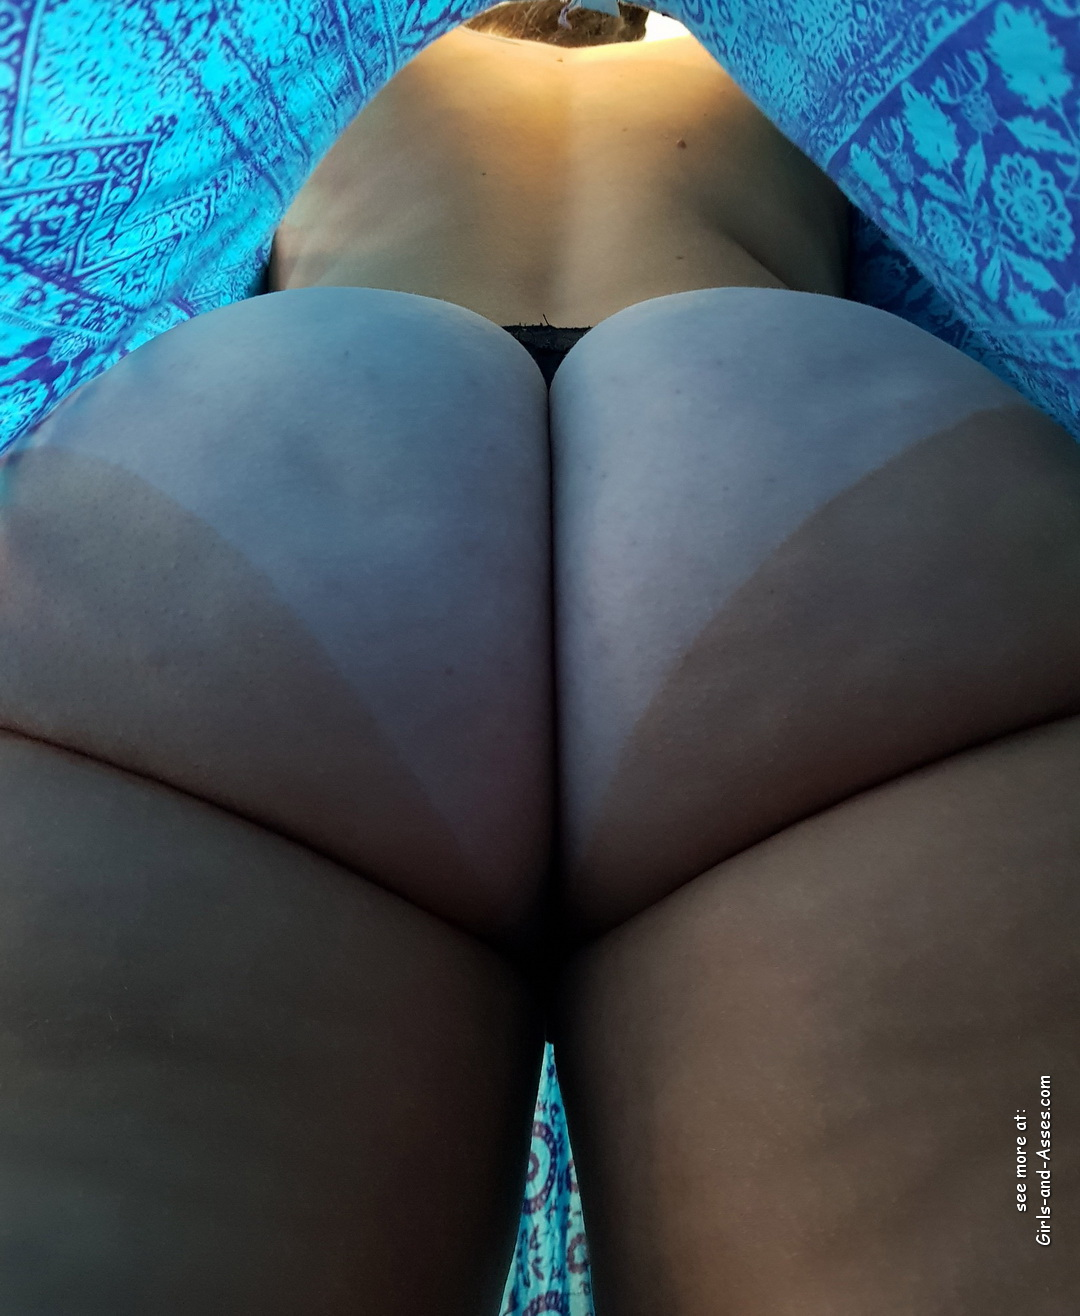 fat booty milf picture 00945